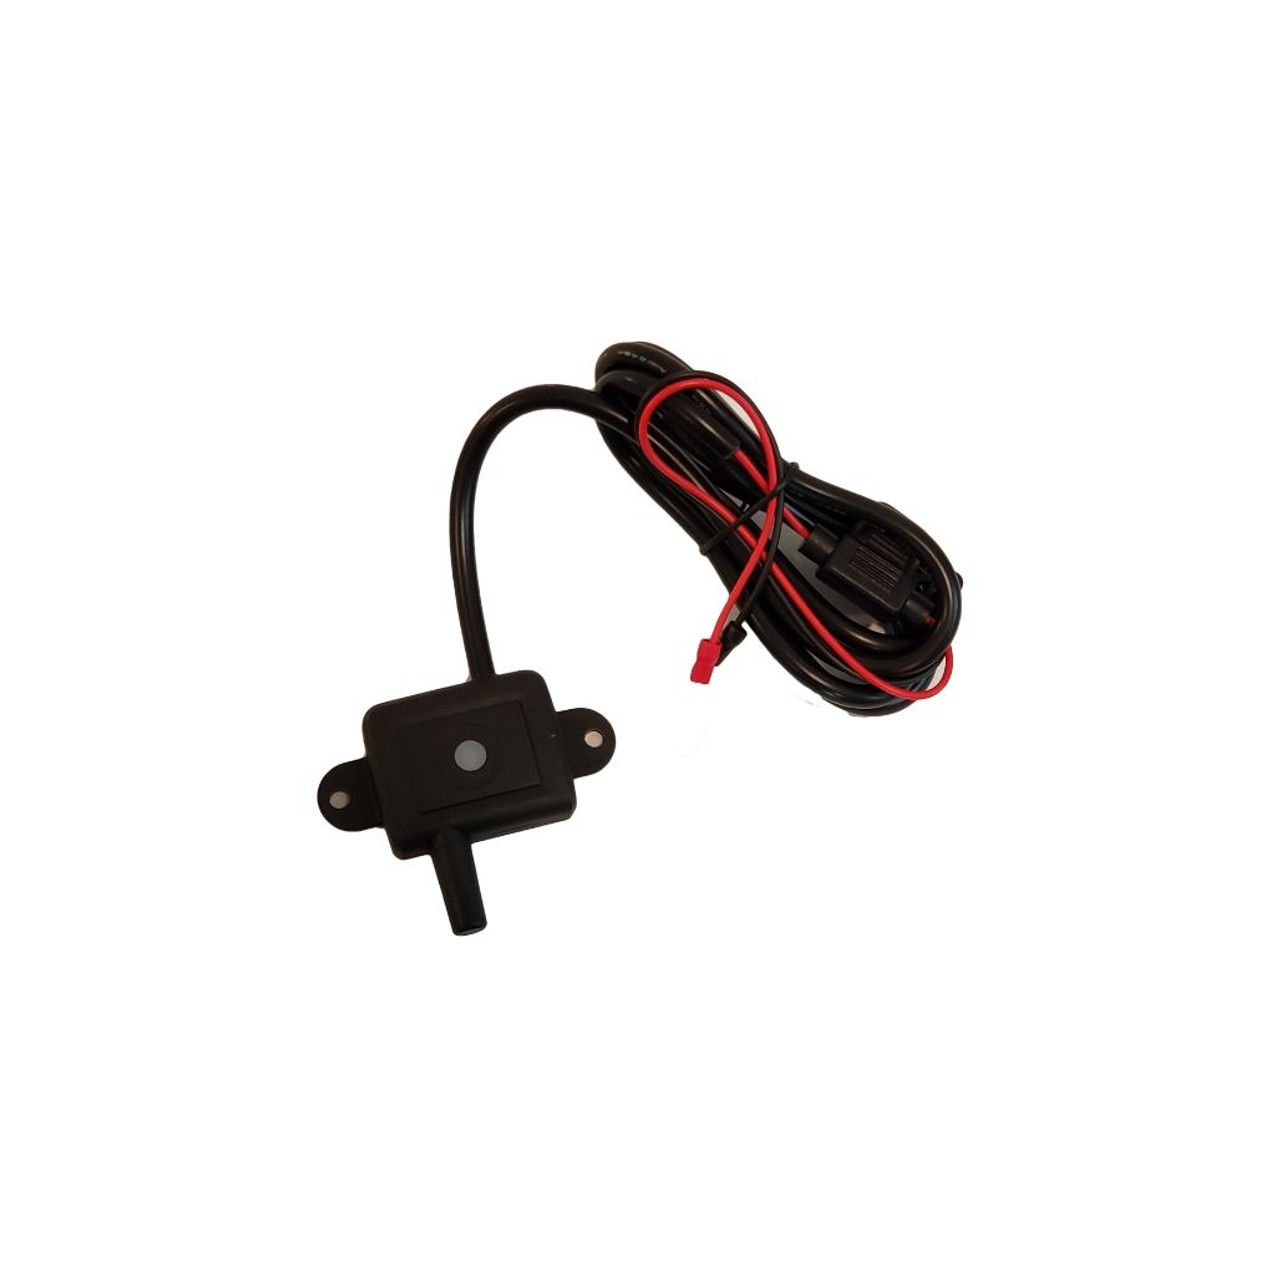 TST 507 Signal Repeater